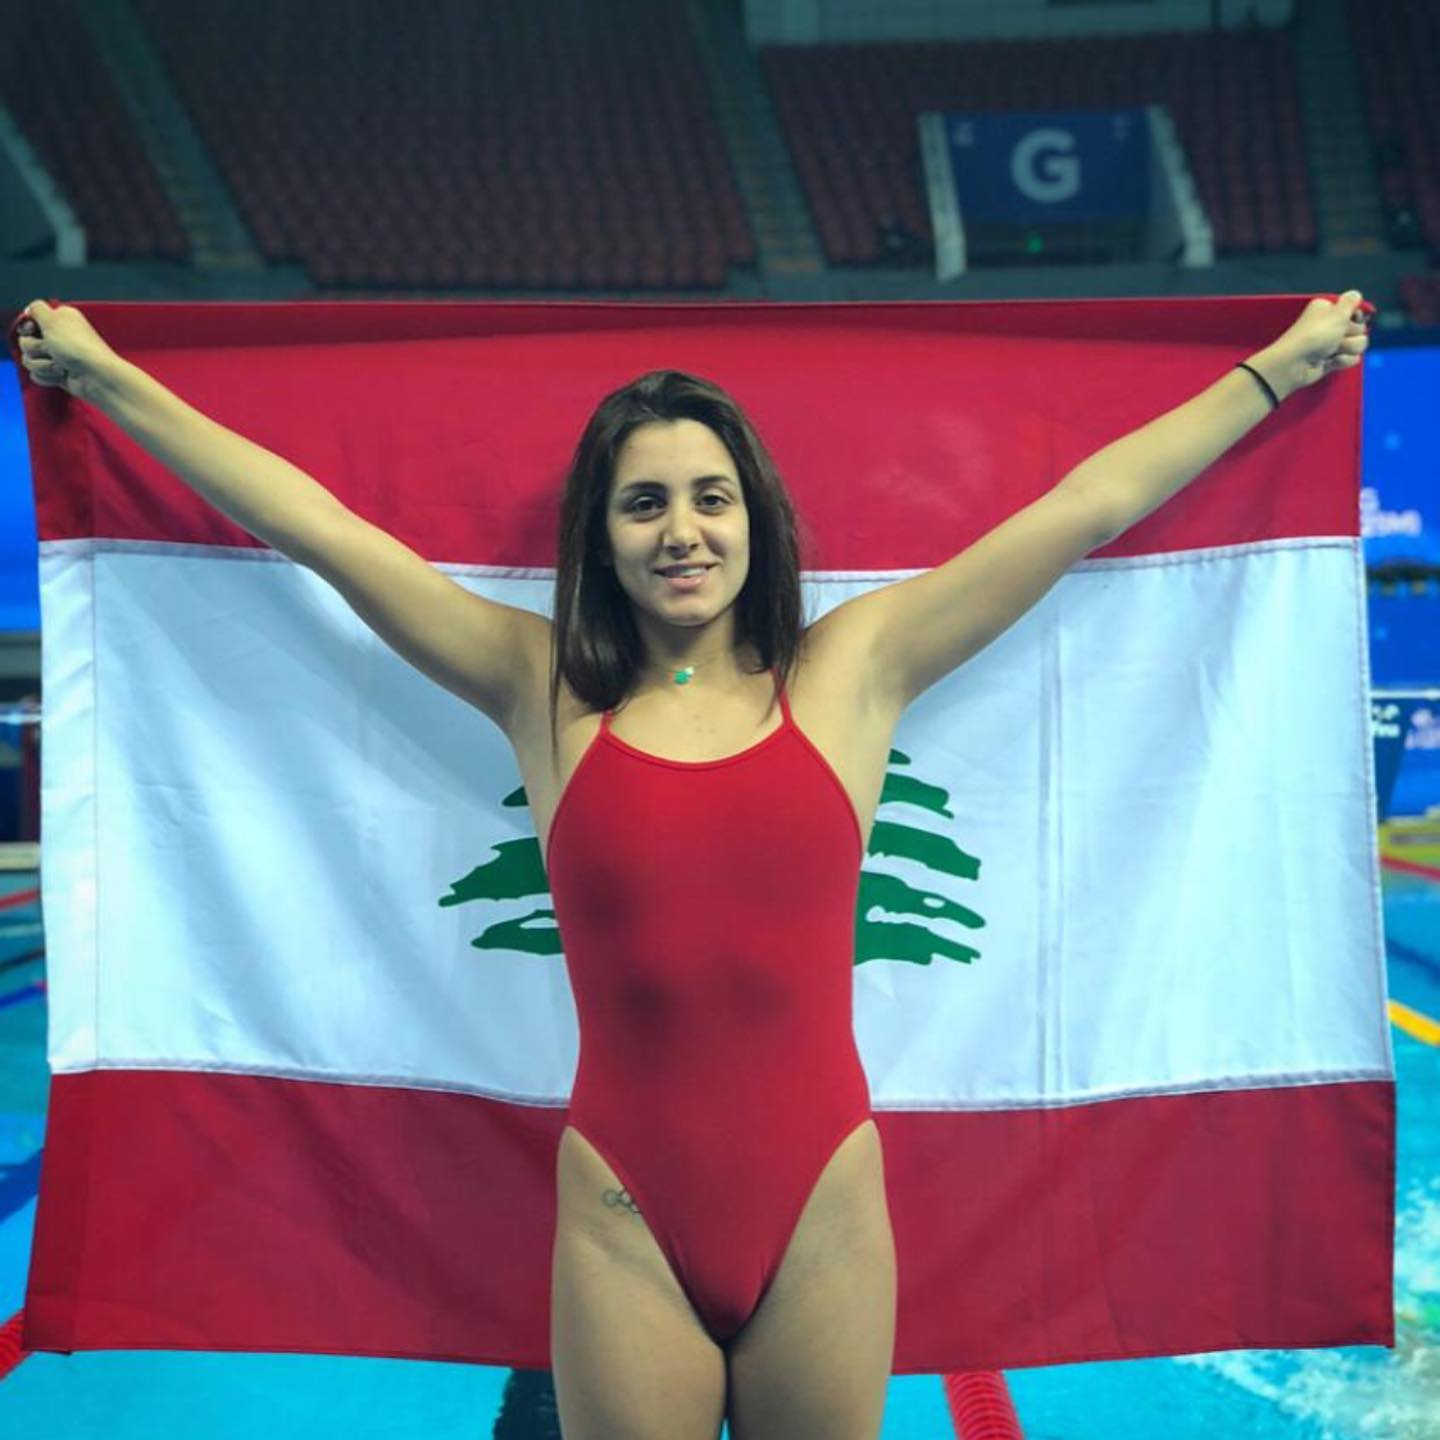 This is the second time Gabriella Doueihy has qualified to represent Lebanon at the Olympic Games.